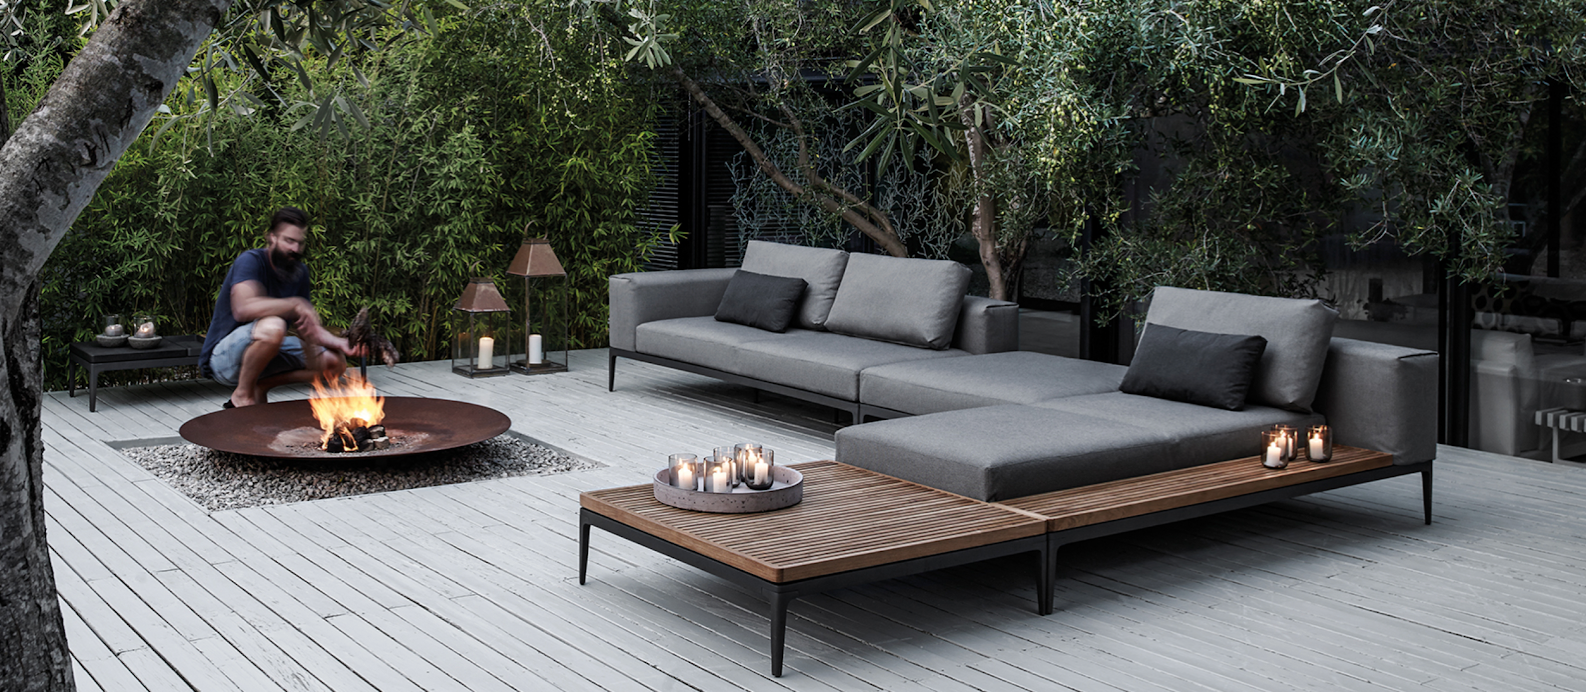 Gloster, Outdoor Trends by Denise Morrison Interiors 1.png